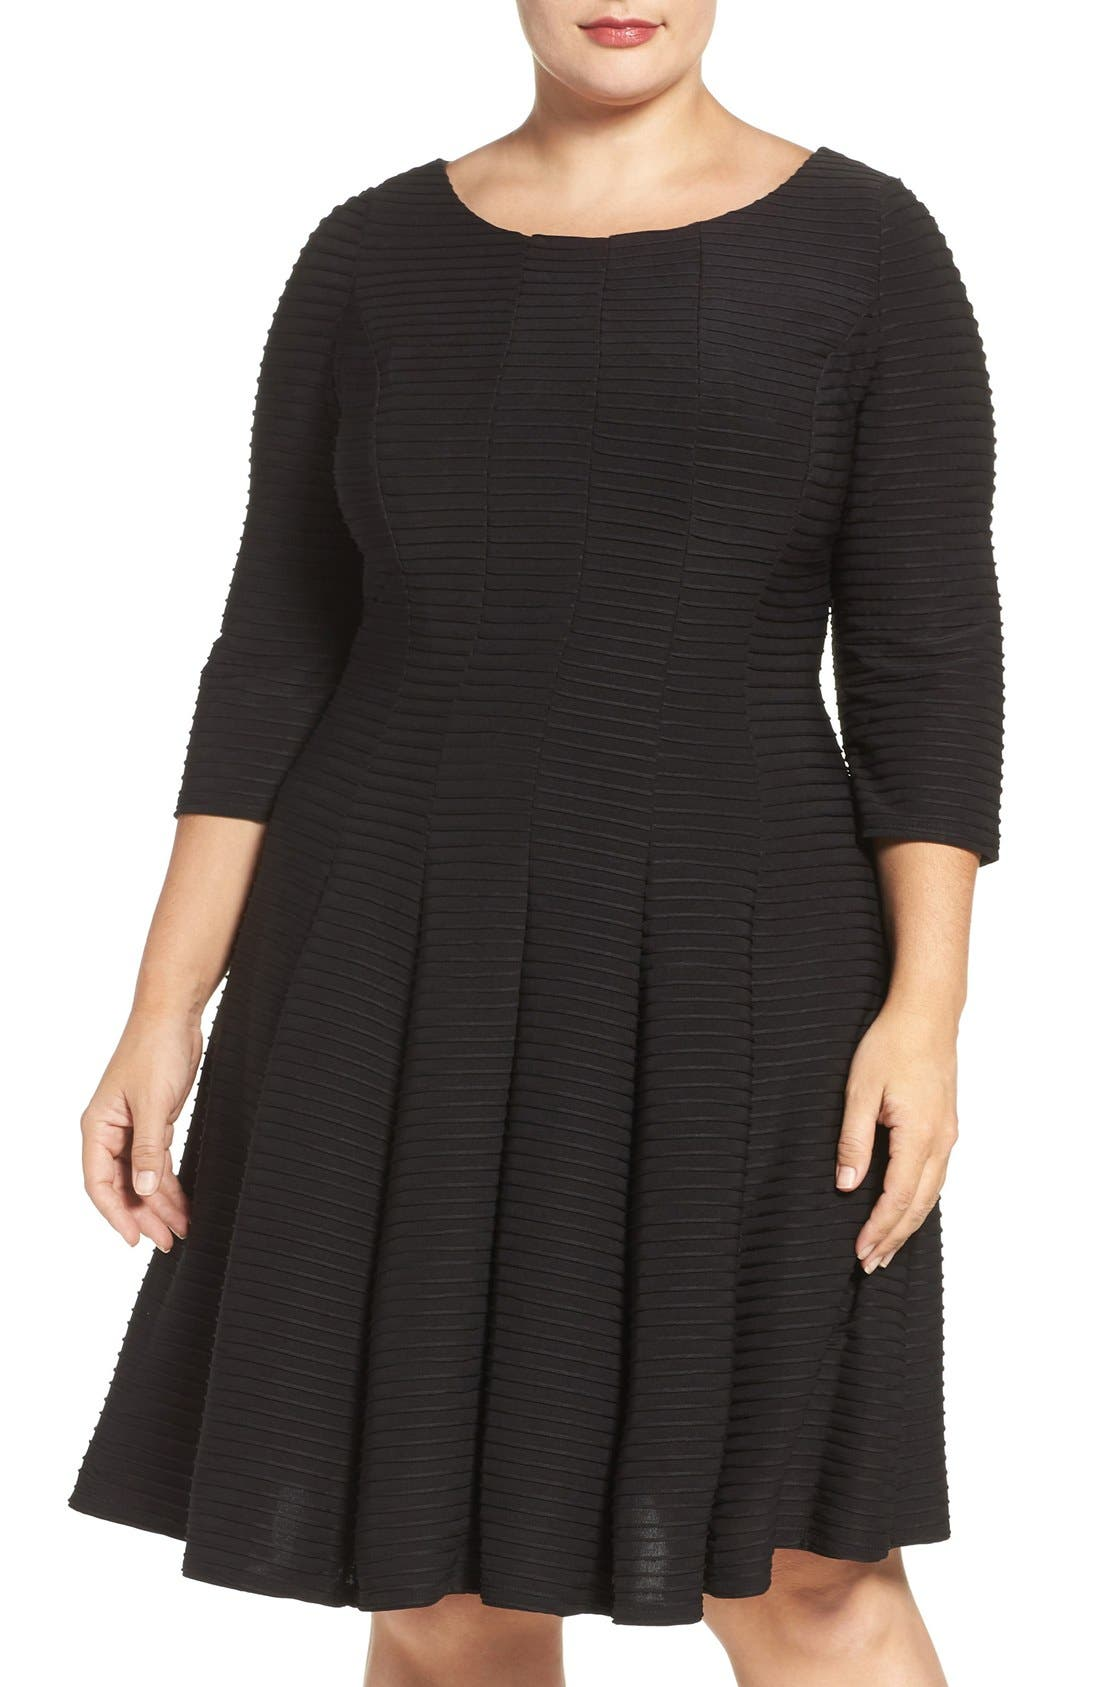 Main Image - Gabby Skye Pintuck Knit Fit & Flare Dress (Plus Size)